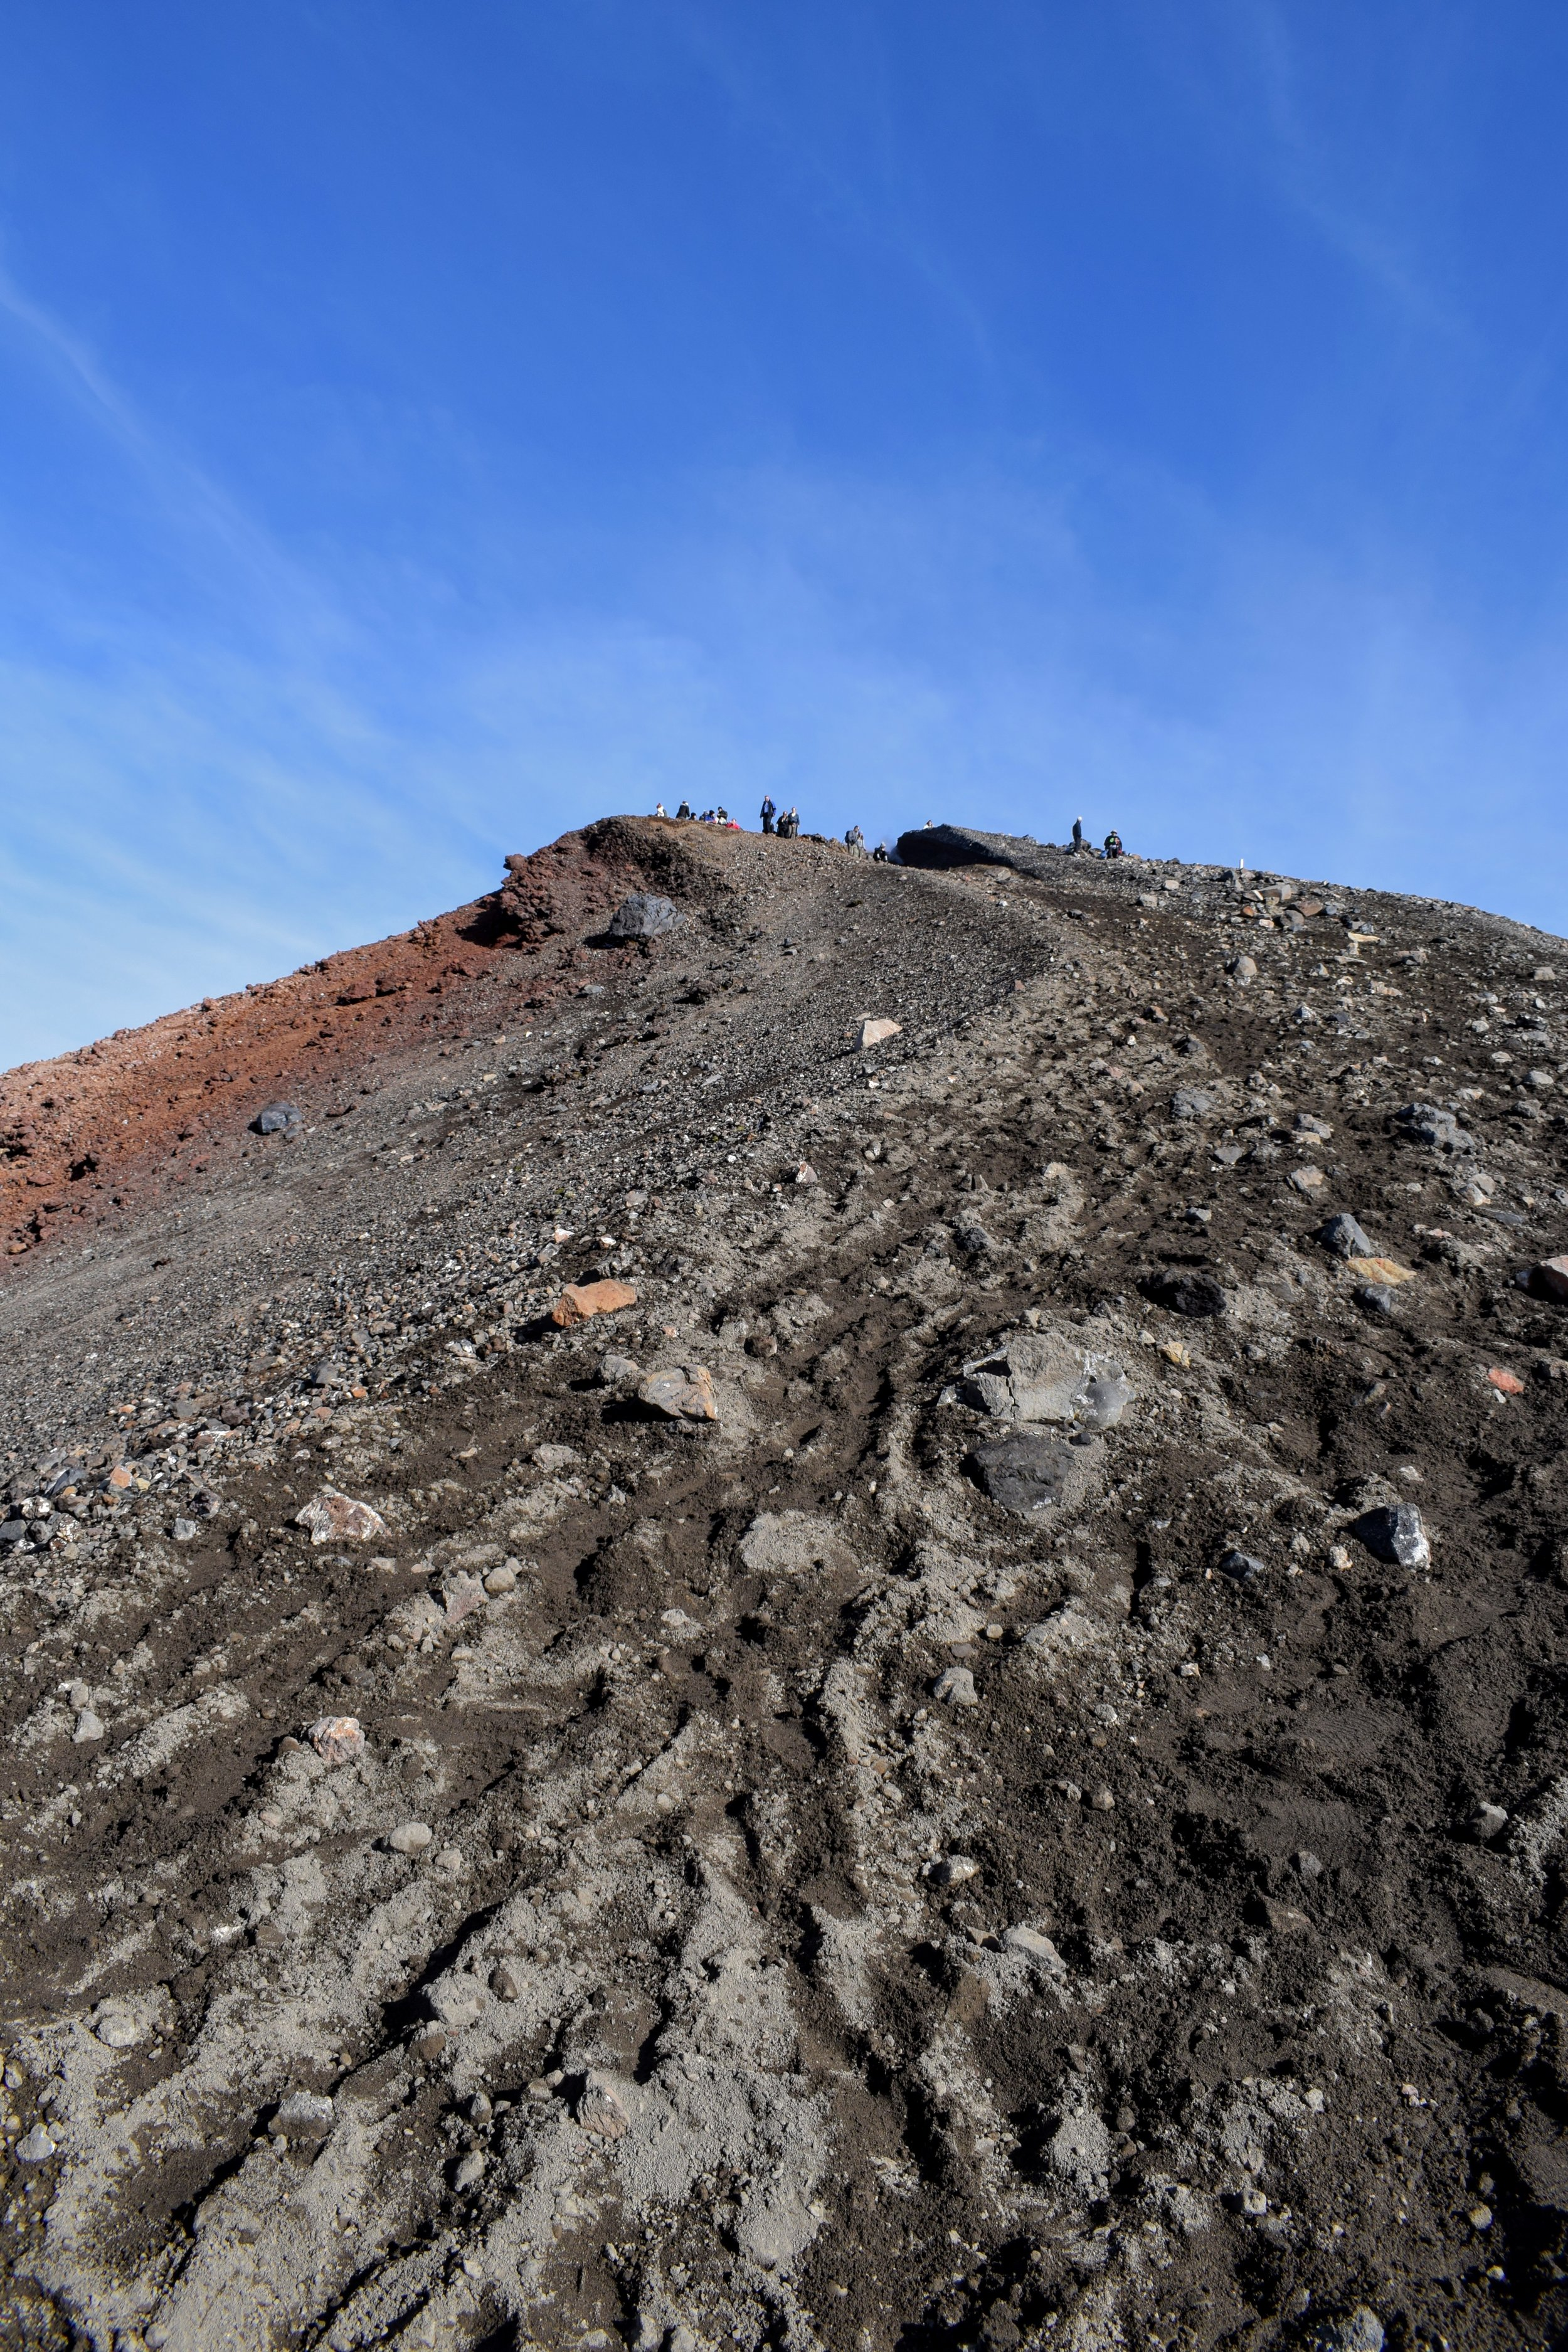 This is the view back up the insane ashy slope to the top.